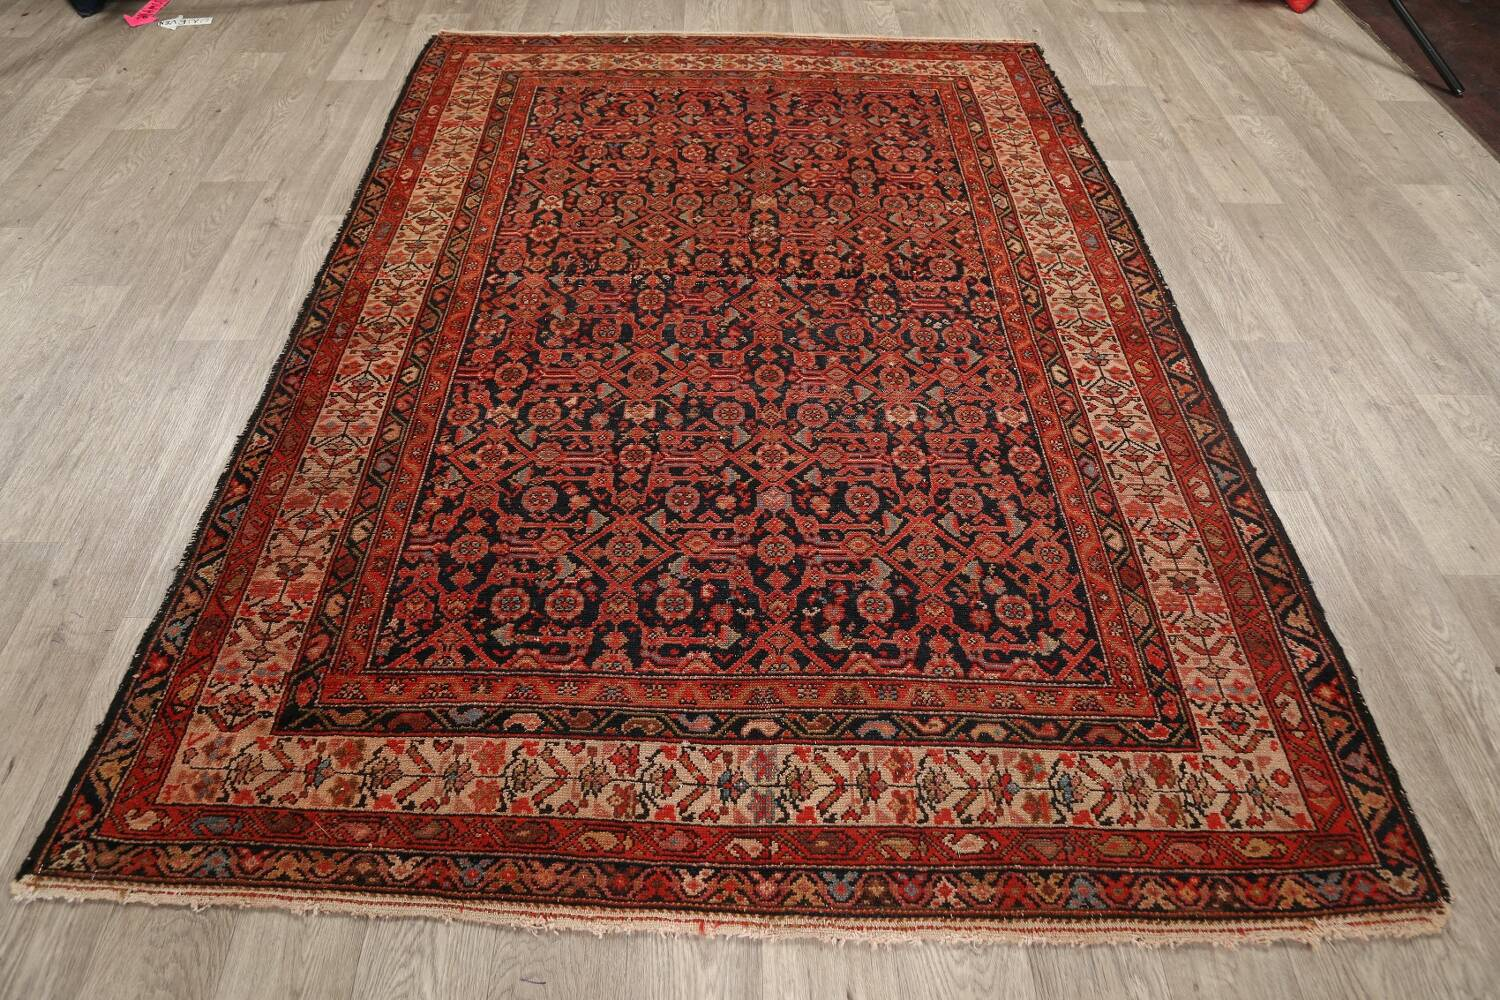 Pre-1900 Antique Malayer Vegetable Dye Persian Area Rug 5x7 image 13